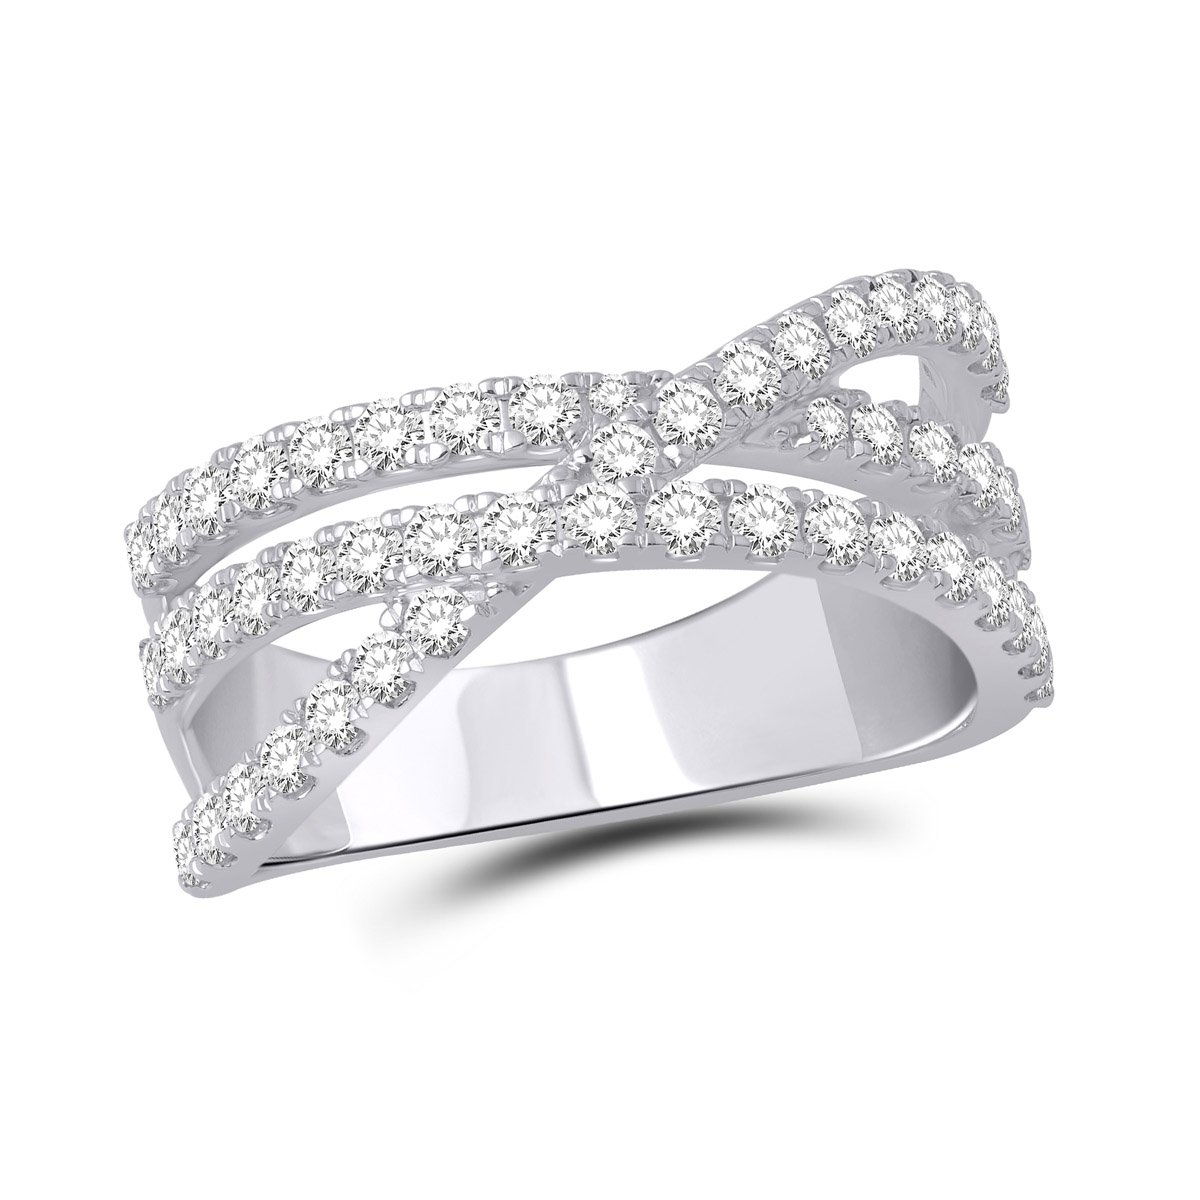 Paramount Gems 18 Karat White Gold Crossover Diamond Band